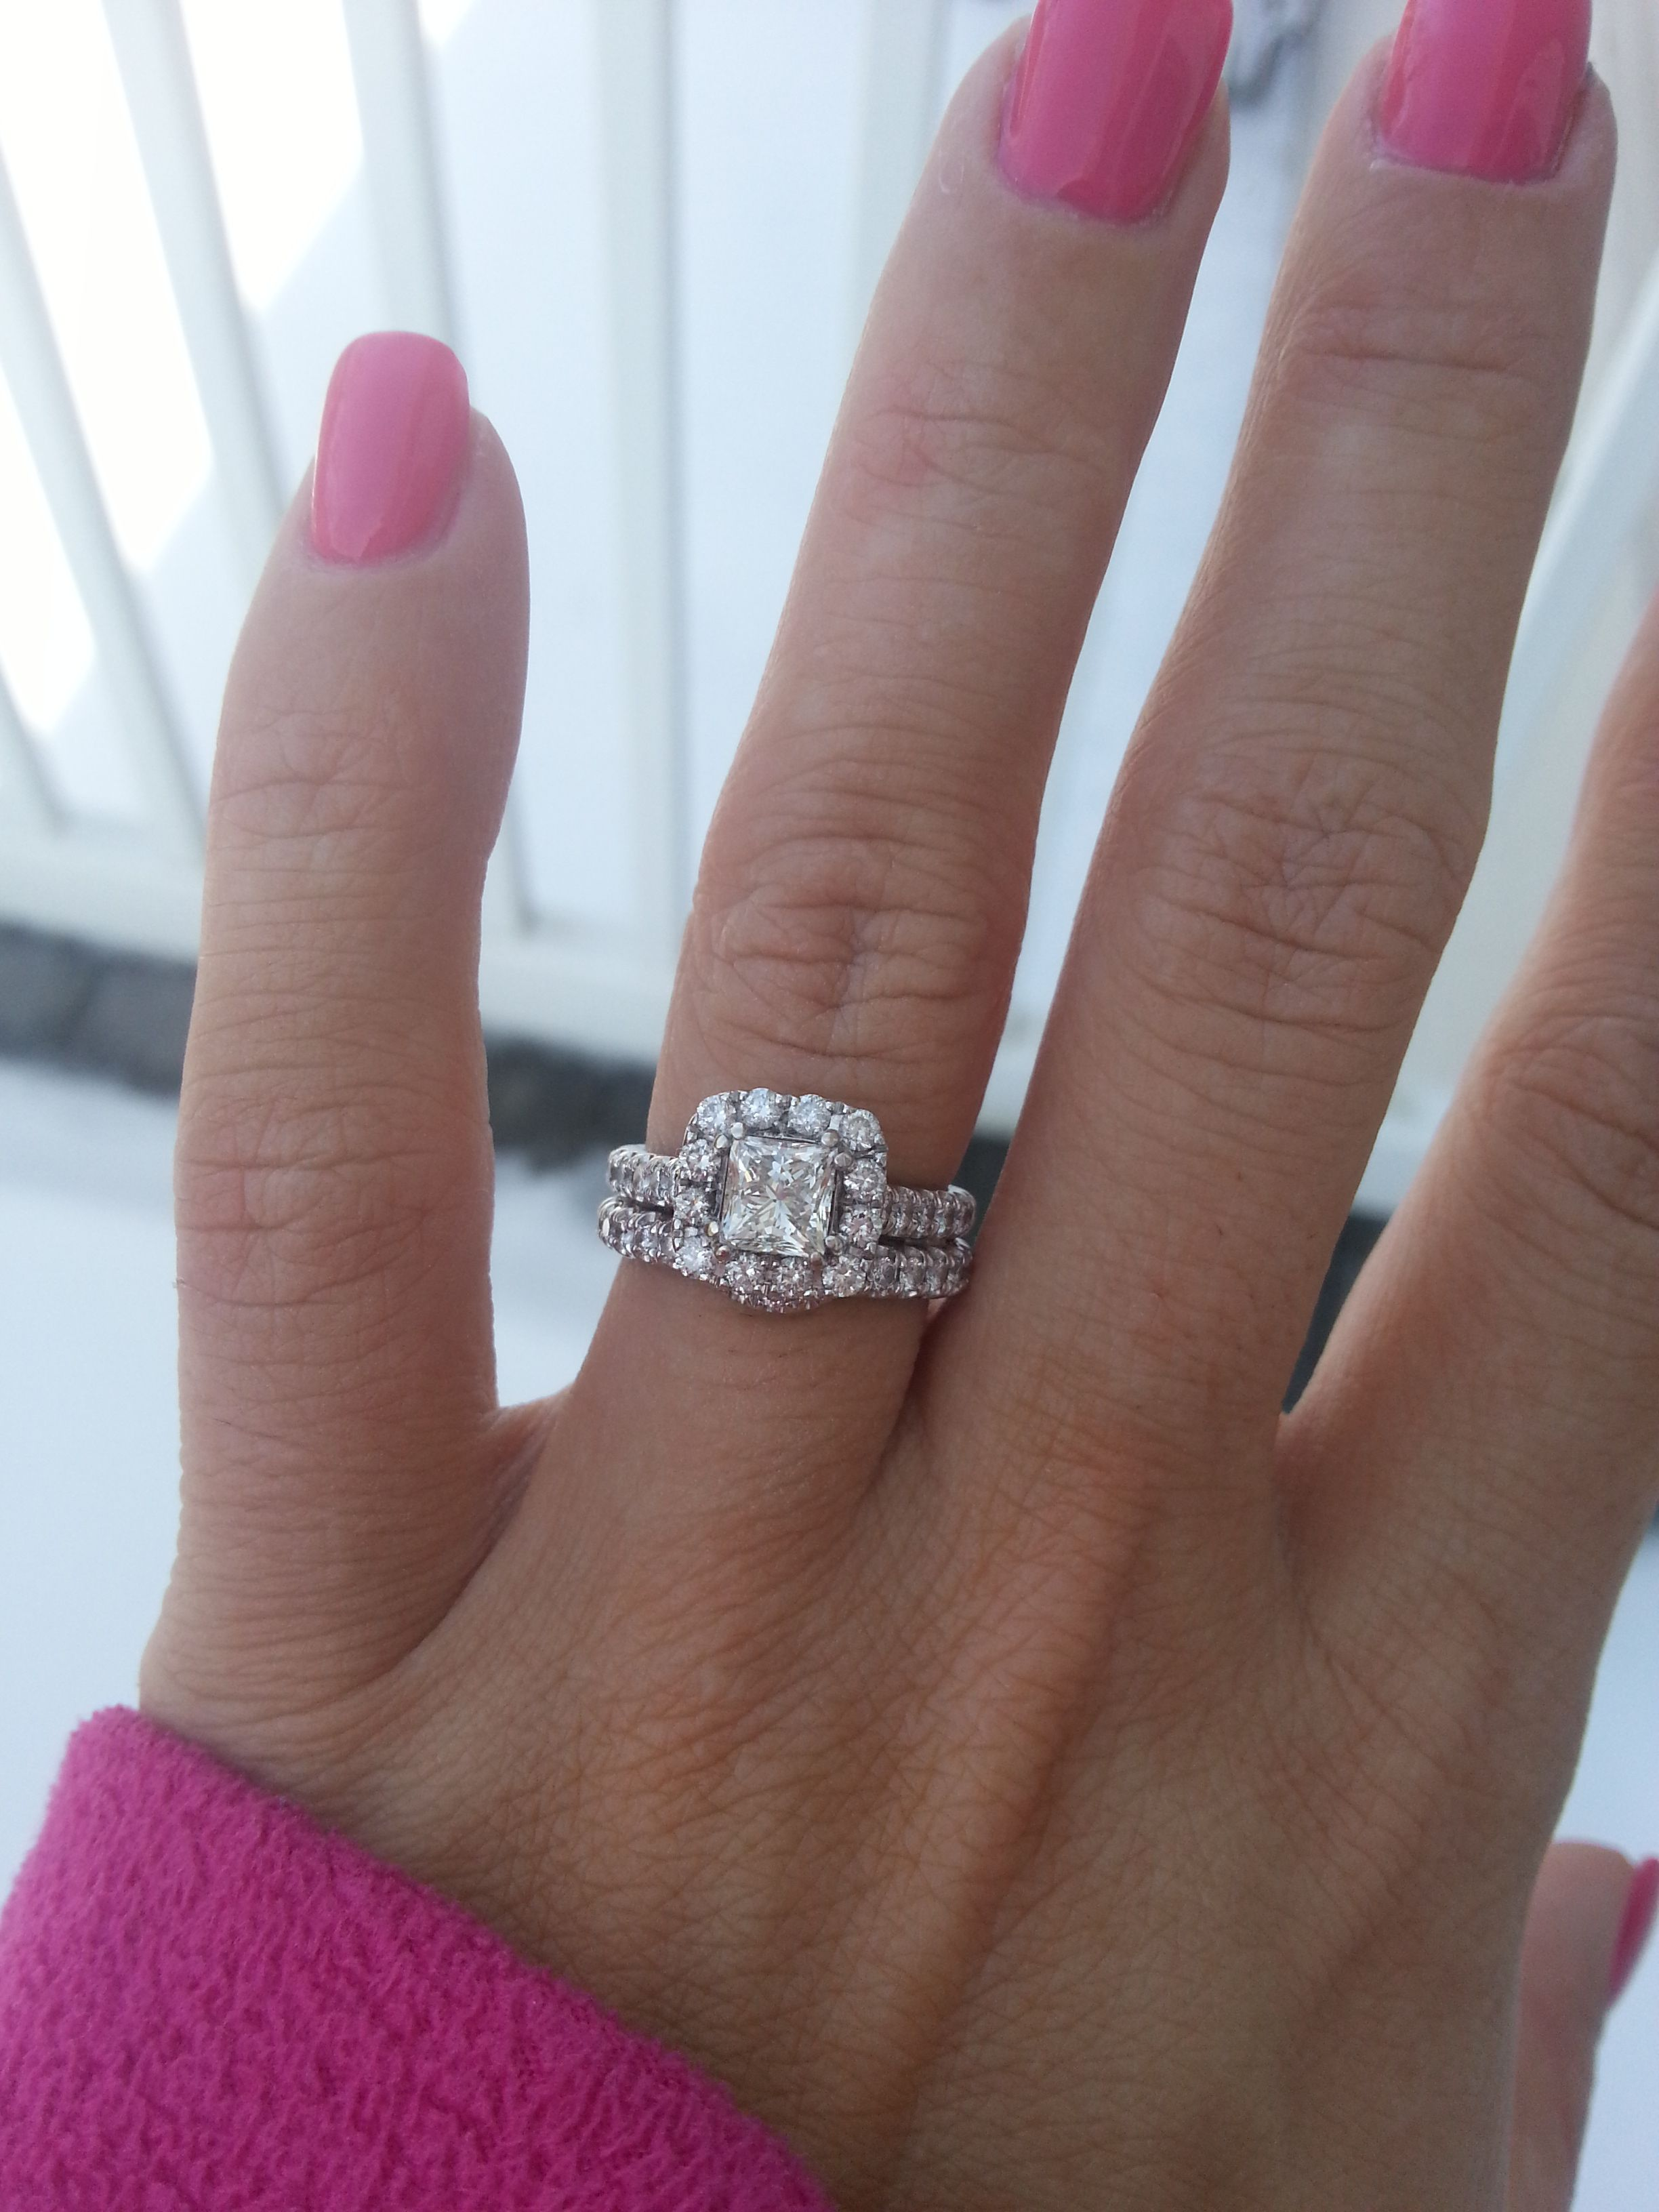 Pics of Neil Lane 1 5 ct Halo Engagement Ring on 4 5 size Finger